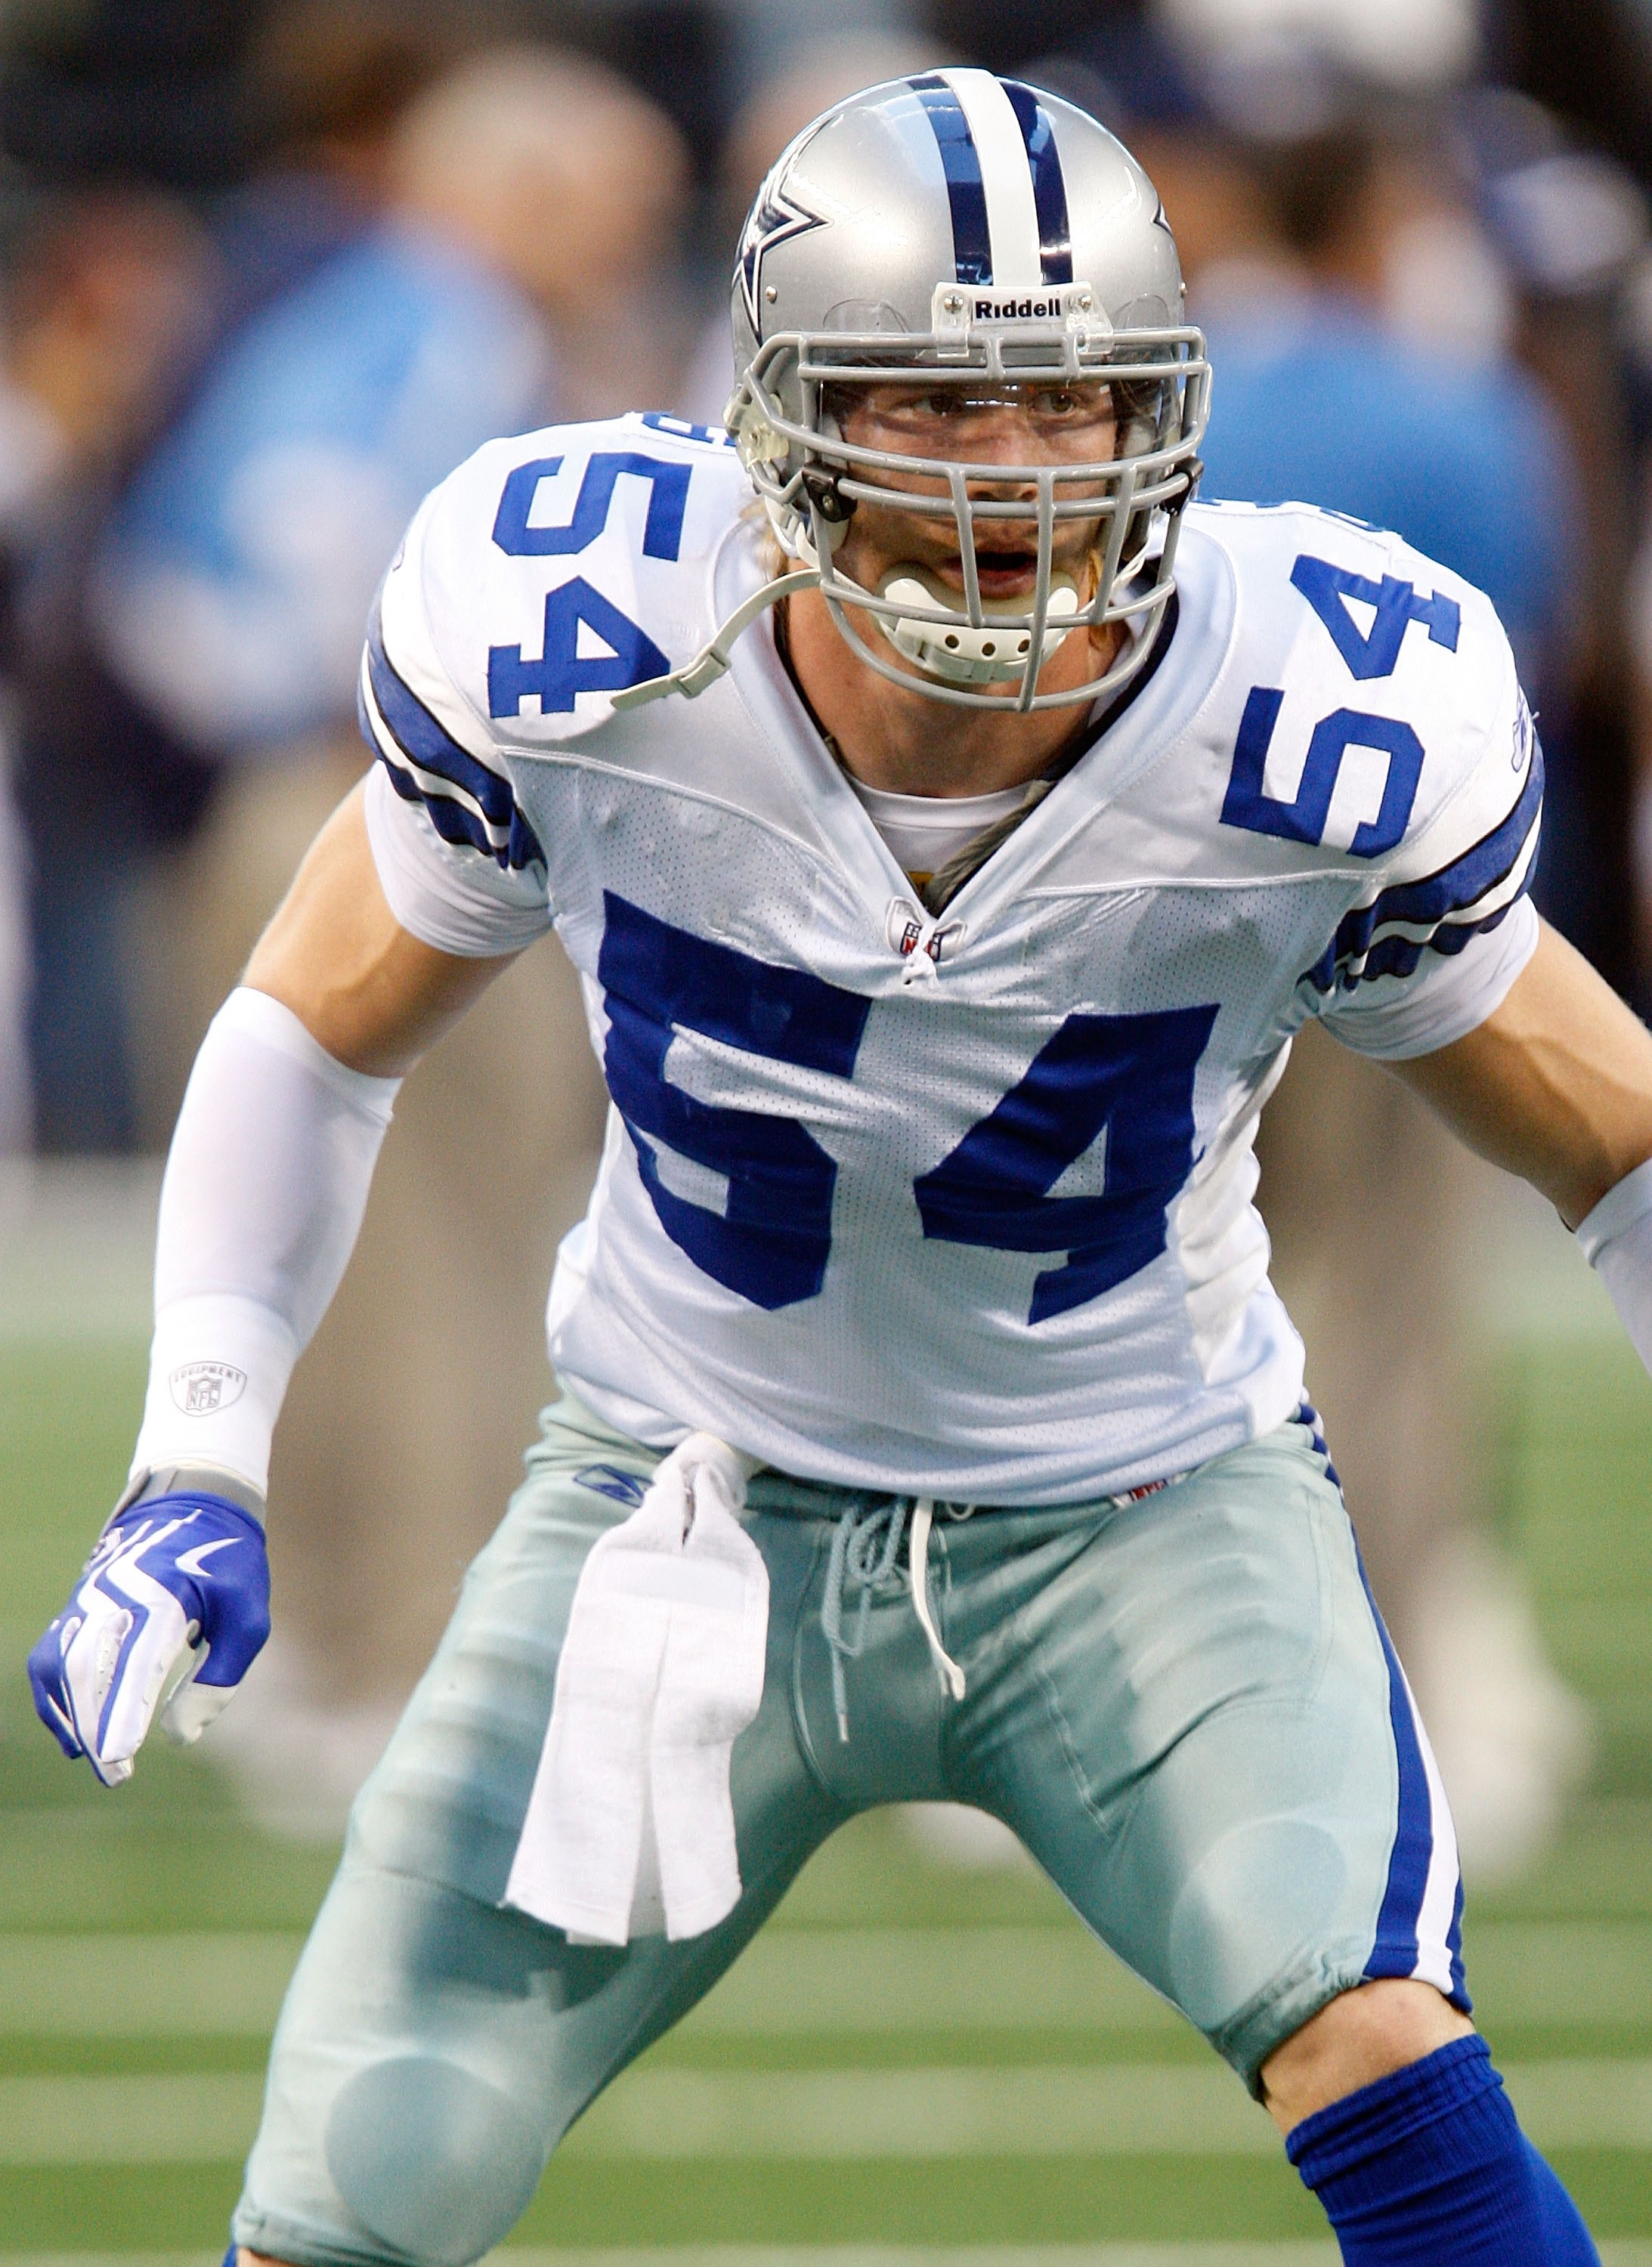 ARLINGTON, TX - DECEMBER 13:  Linebacker Bobby Carpenter #54 of the Dallas Cowboys at Cowboys Stadium on December 13, 2009 in Arlington, Texas.  (Photo by Ronald Martinez/Getty Images)